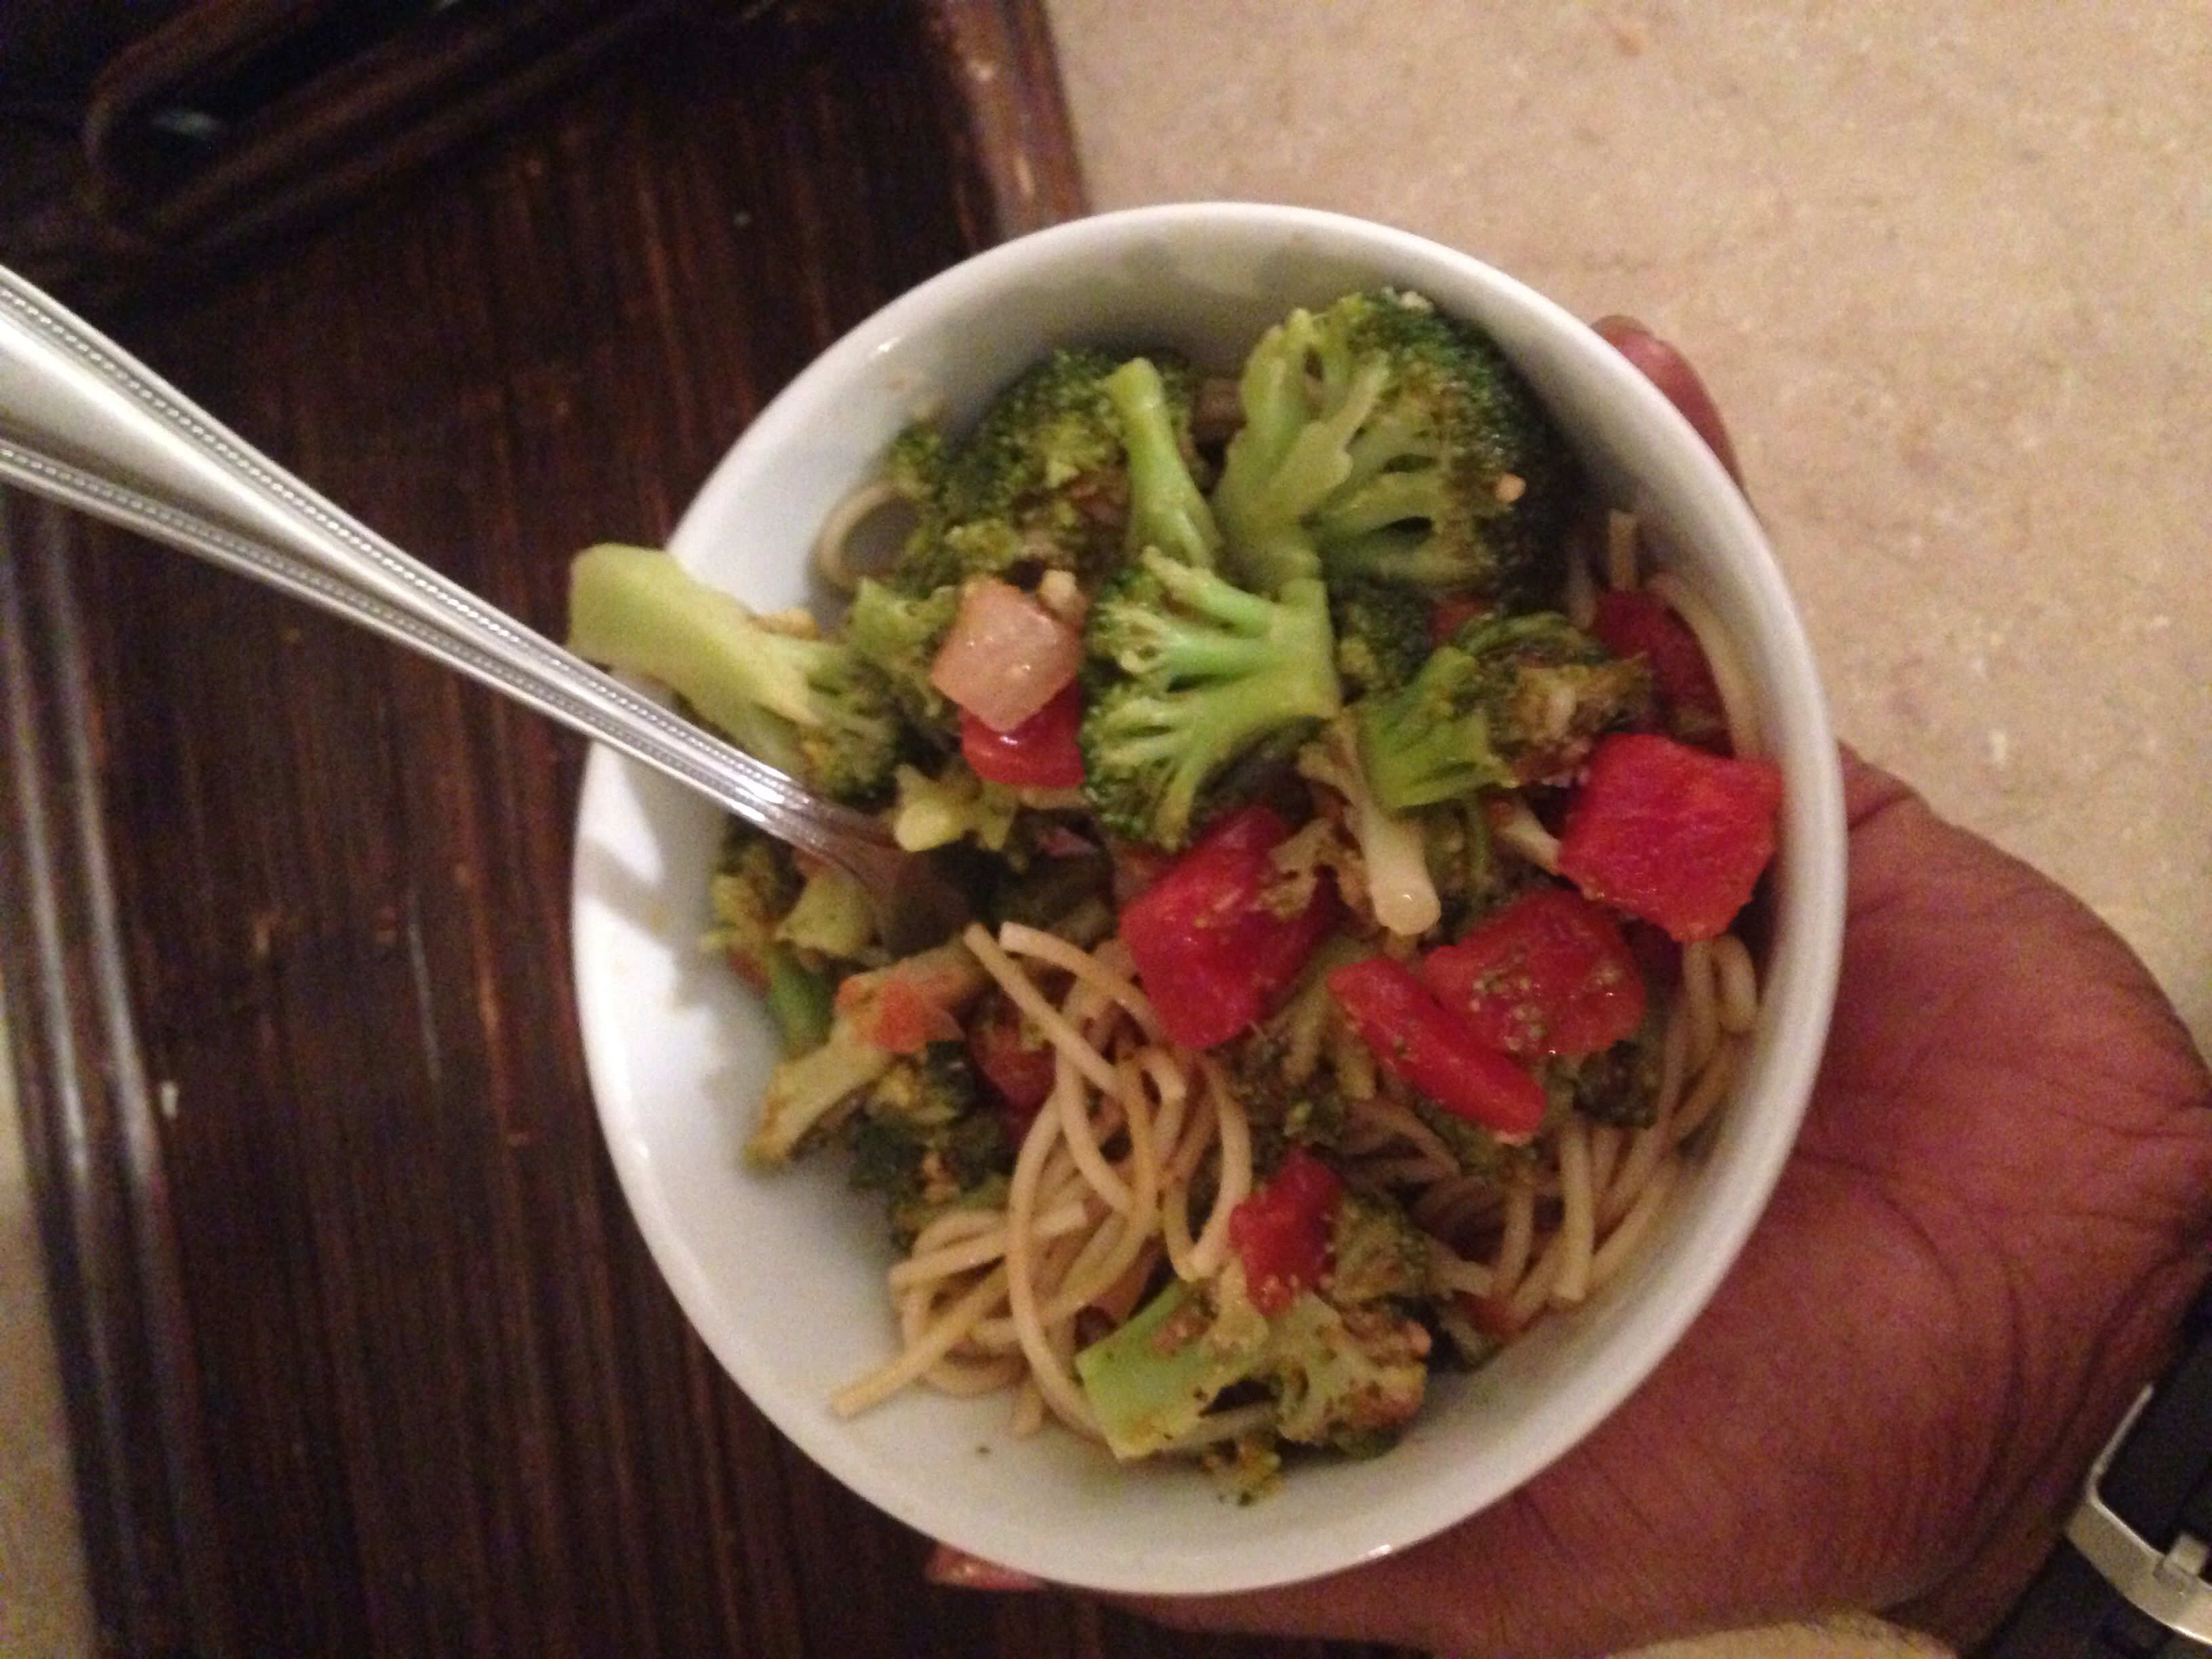 A vegetarian post workout meal... Sautéed tomato broccoli and wheat noodles! Yum